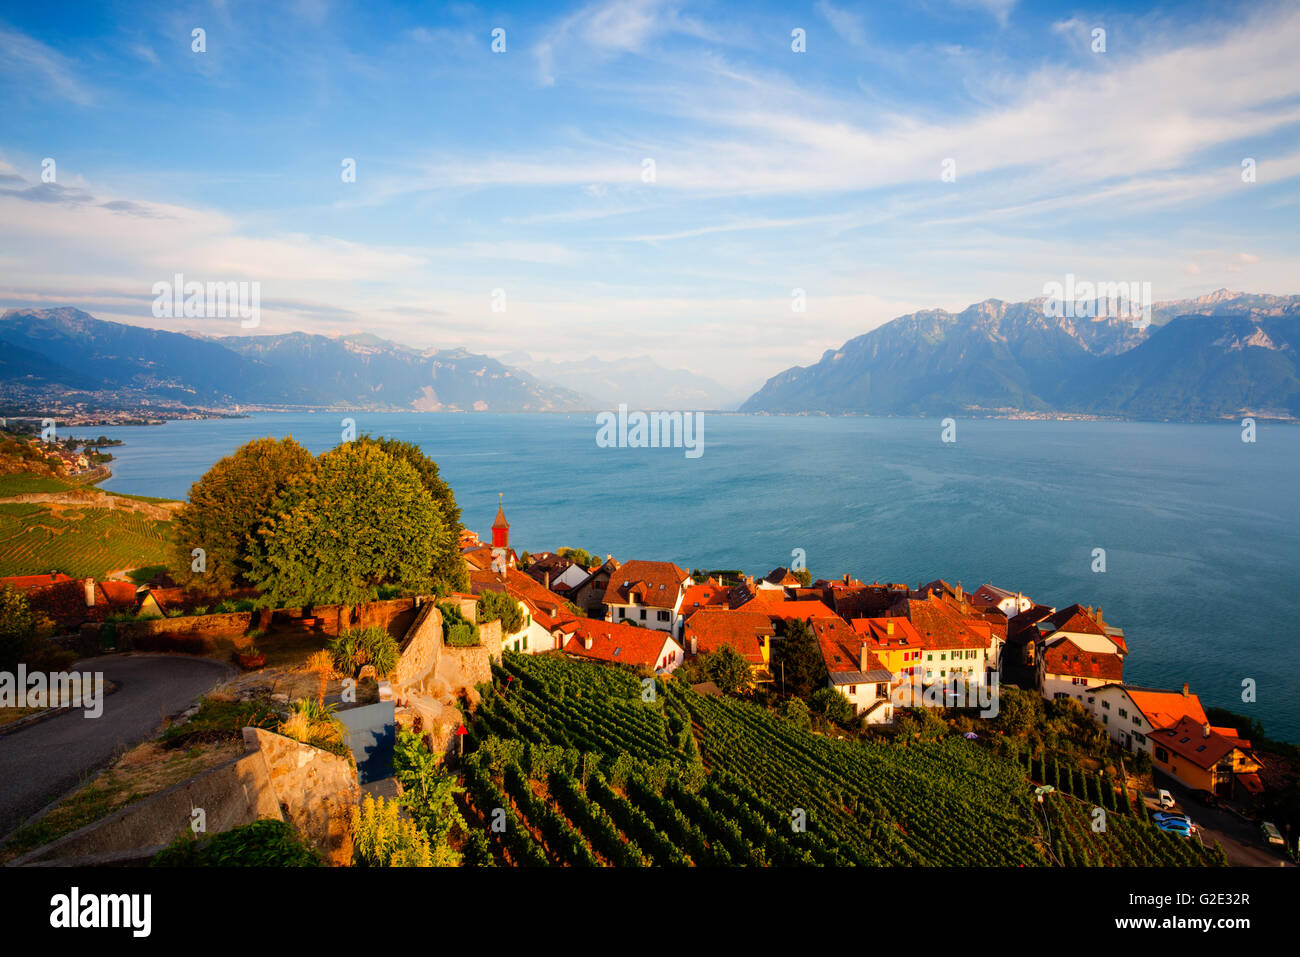 Sunset on vineyards of the Lavaux region over lake Leman (lake of Geneva), Switzerland - HDR ImageStock Photo